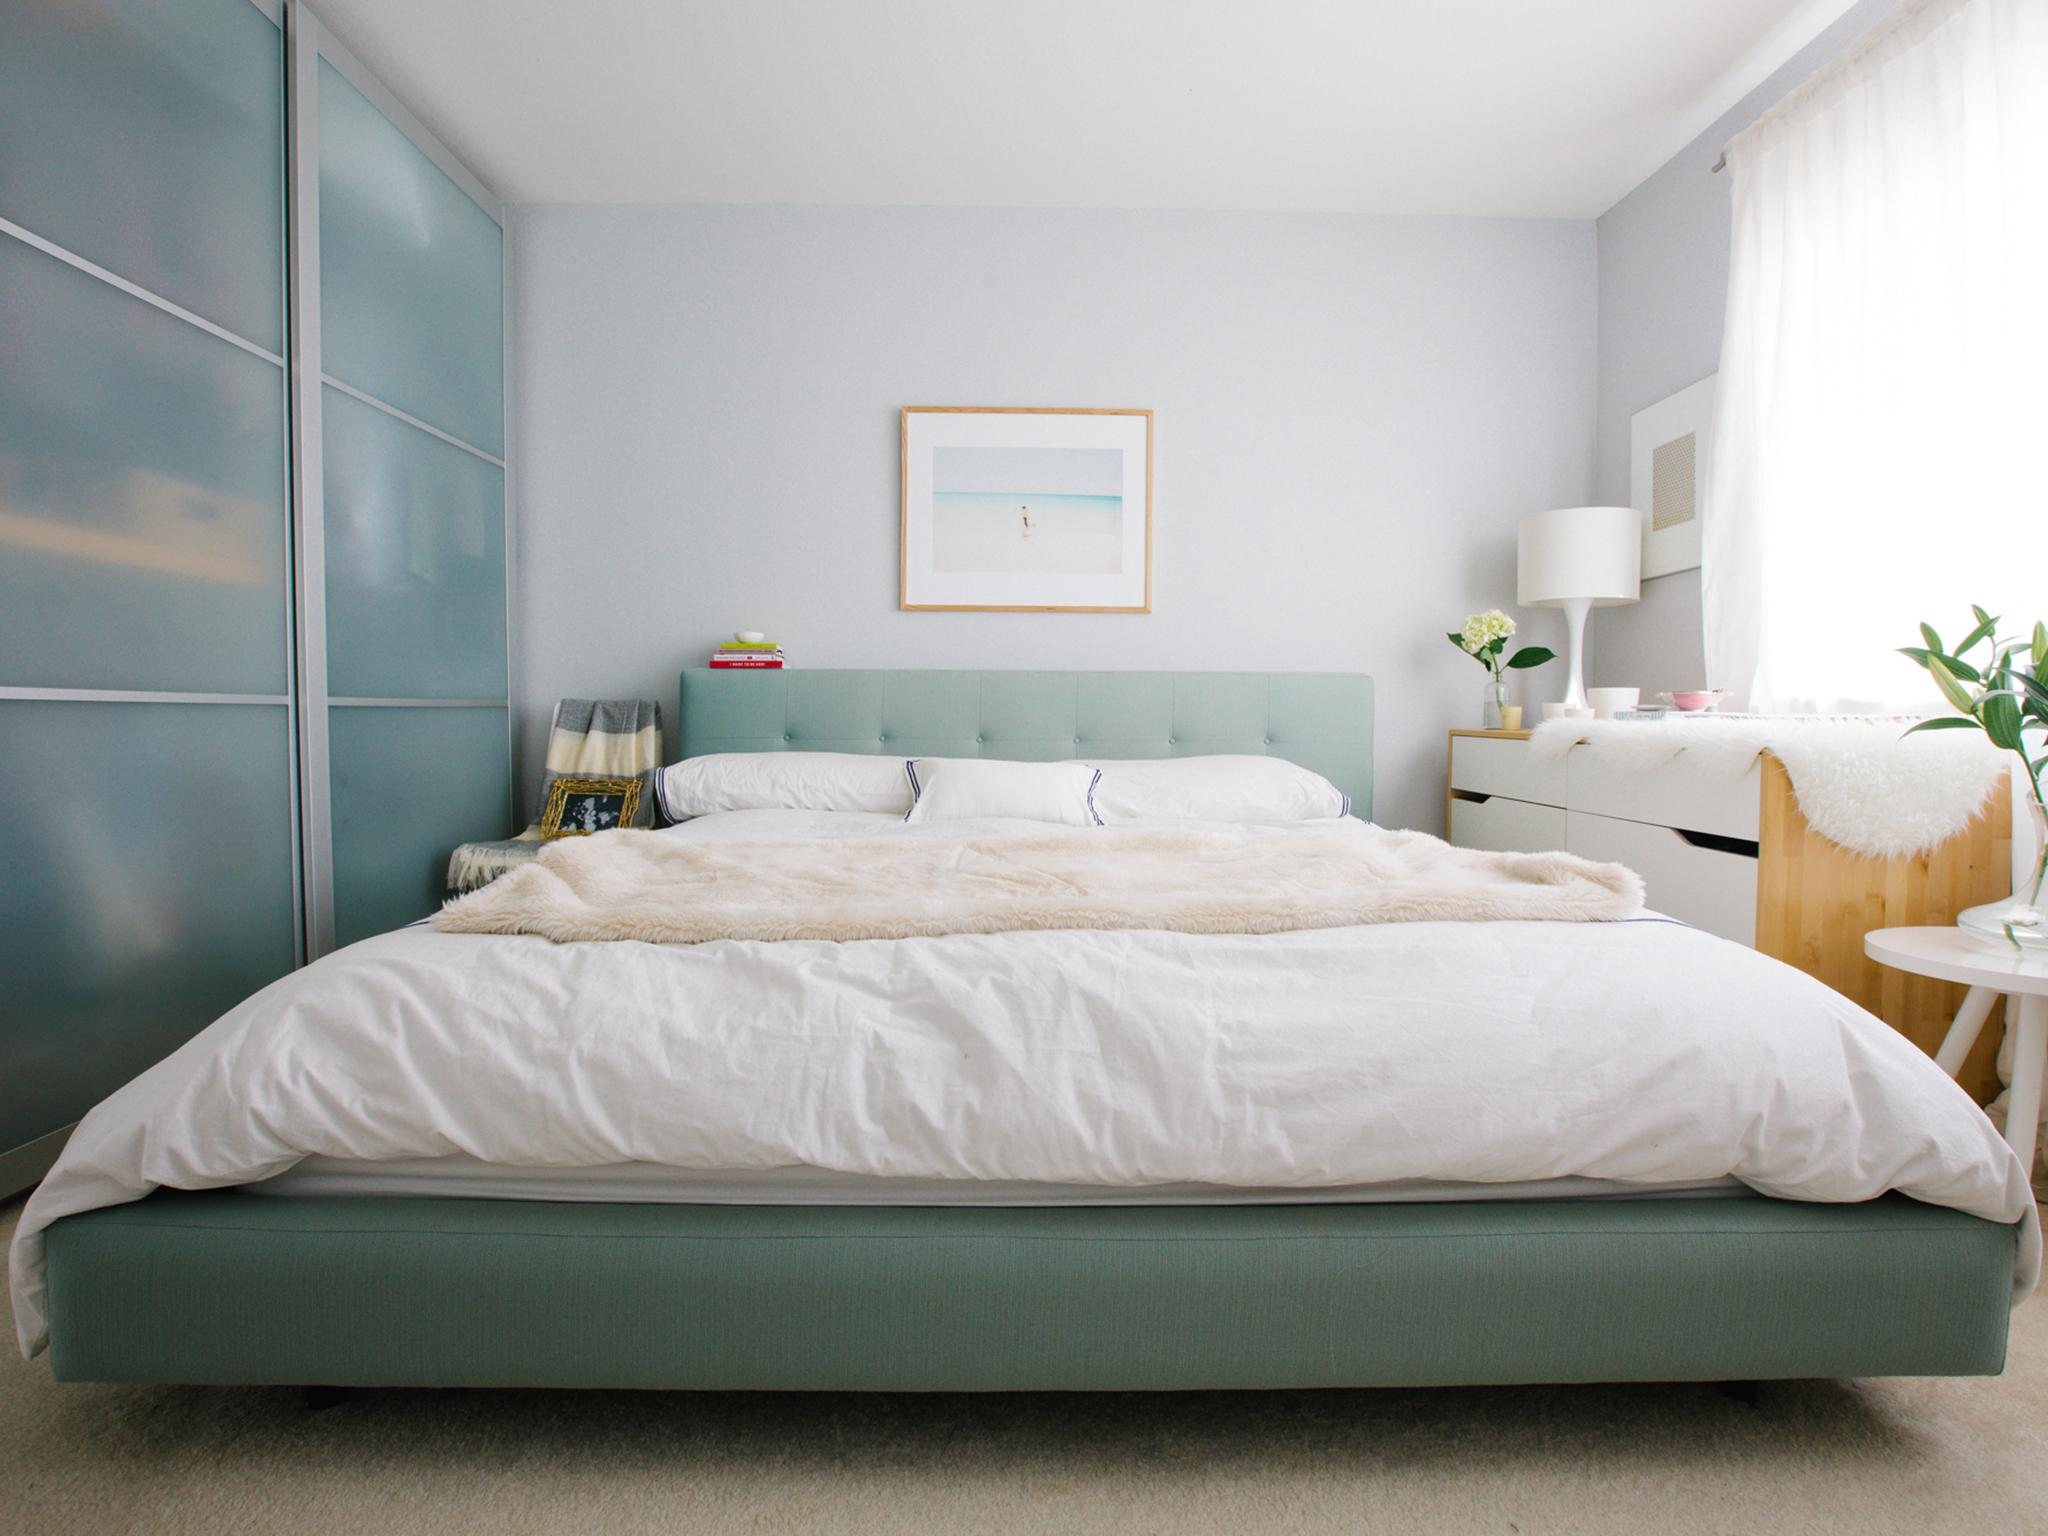 10. Casual And Calm Modern Bedrooms